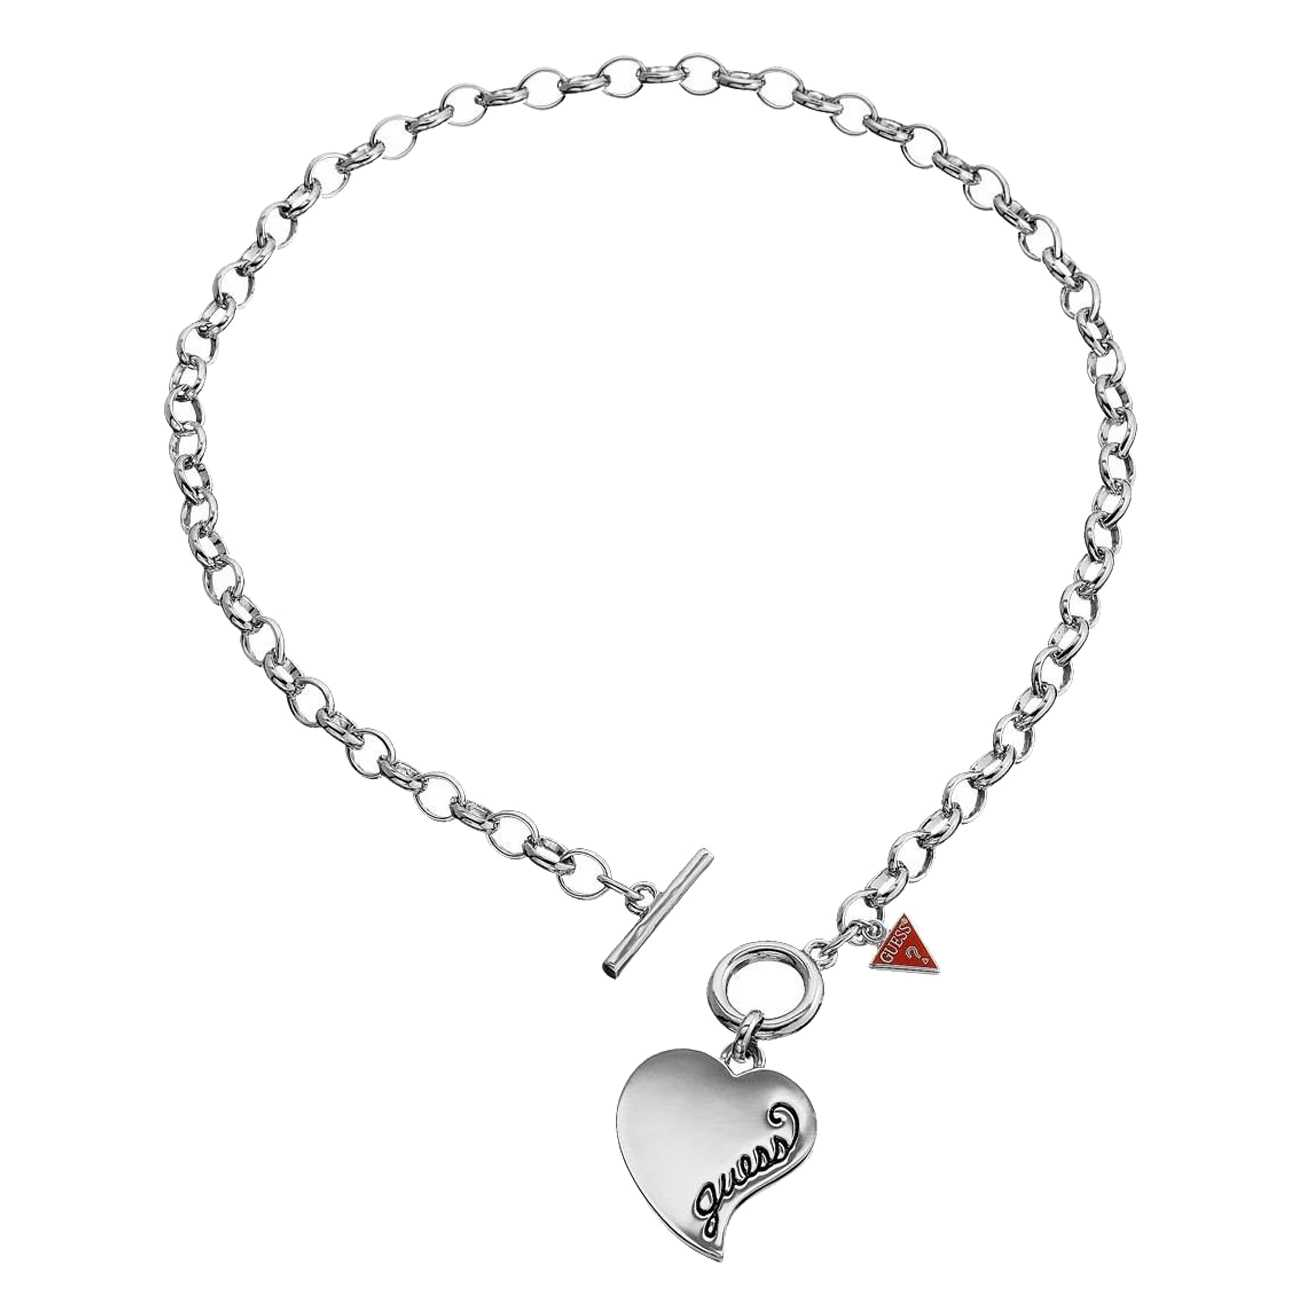 HEART PENDANT UBS81305 imagine produs